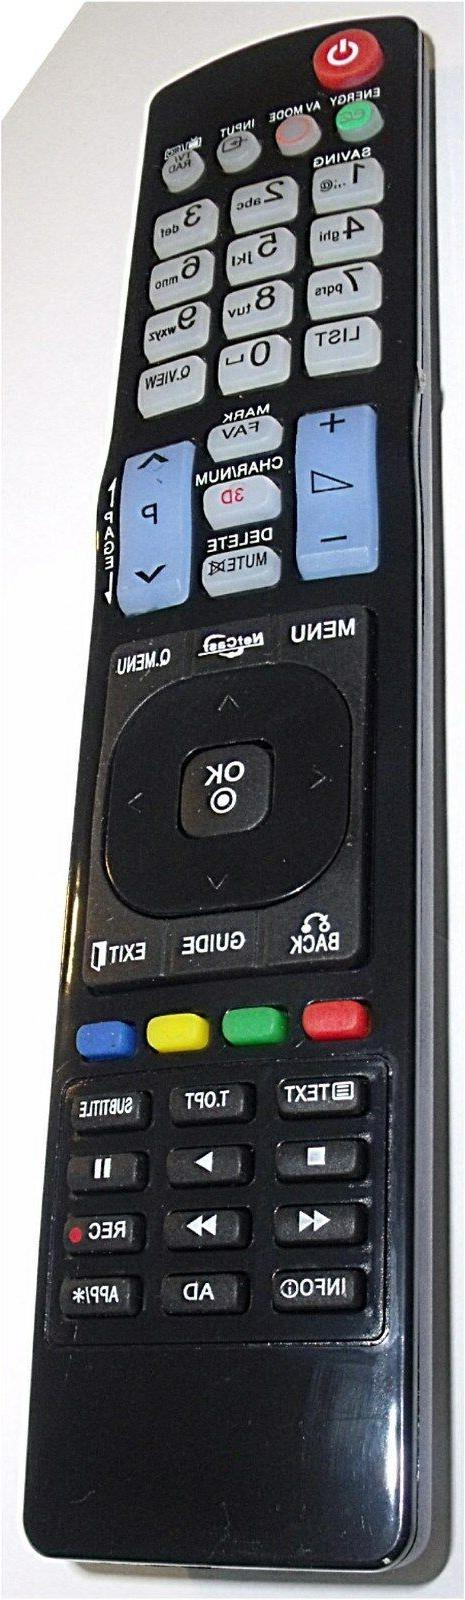 replacement remote control fits lg akb73756504